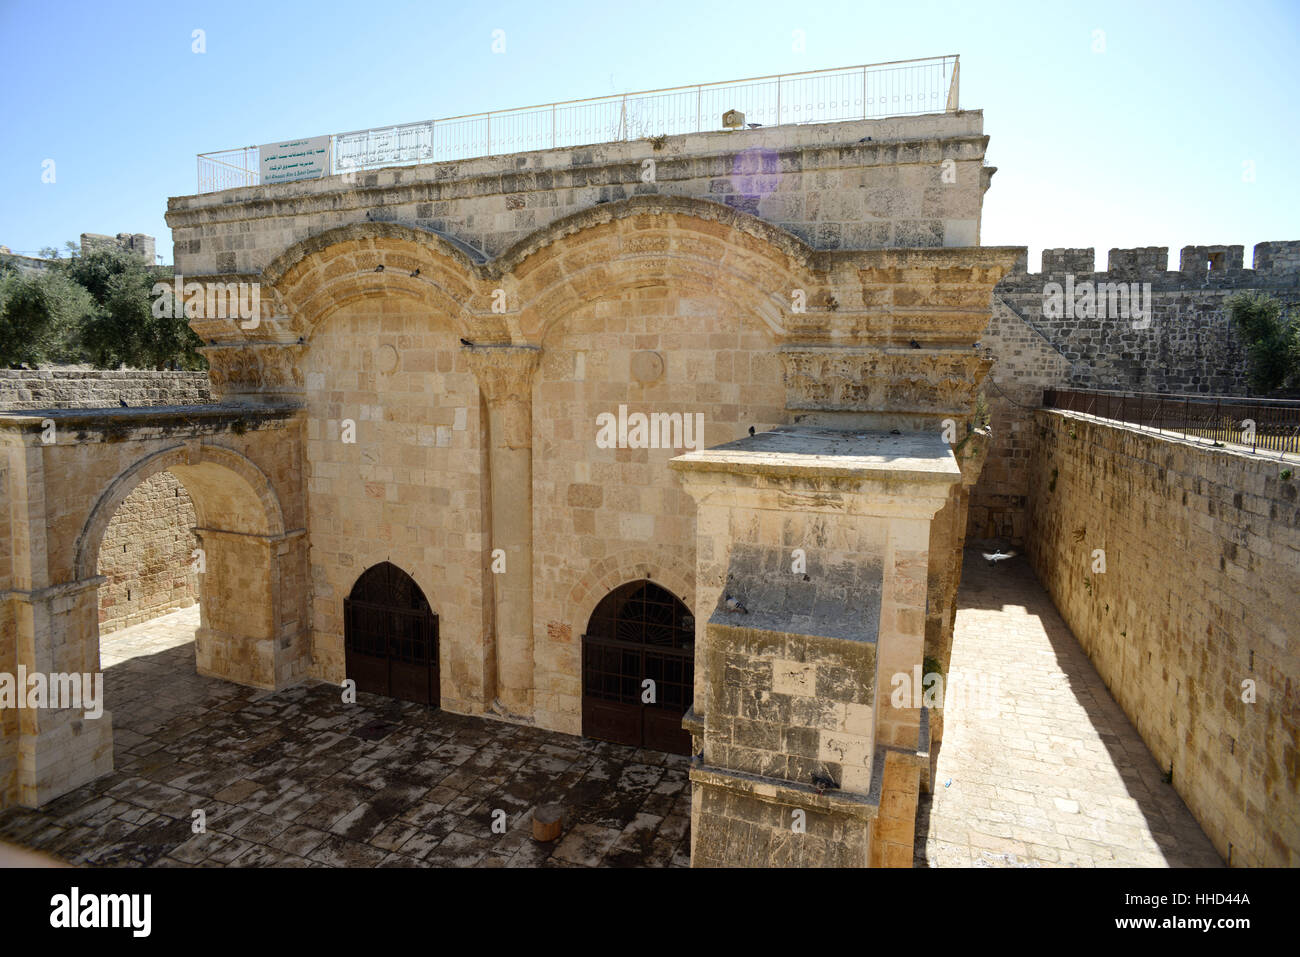 The historic Golden Gate, the only Eastern gate on the Temple Mount in Jerusalem, Israel has been closed since medieval - Stock Image